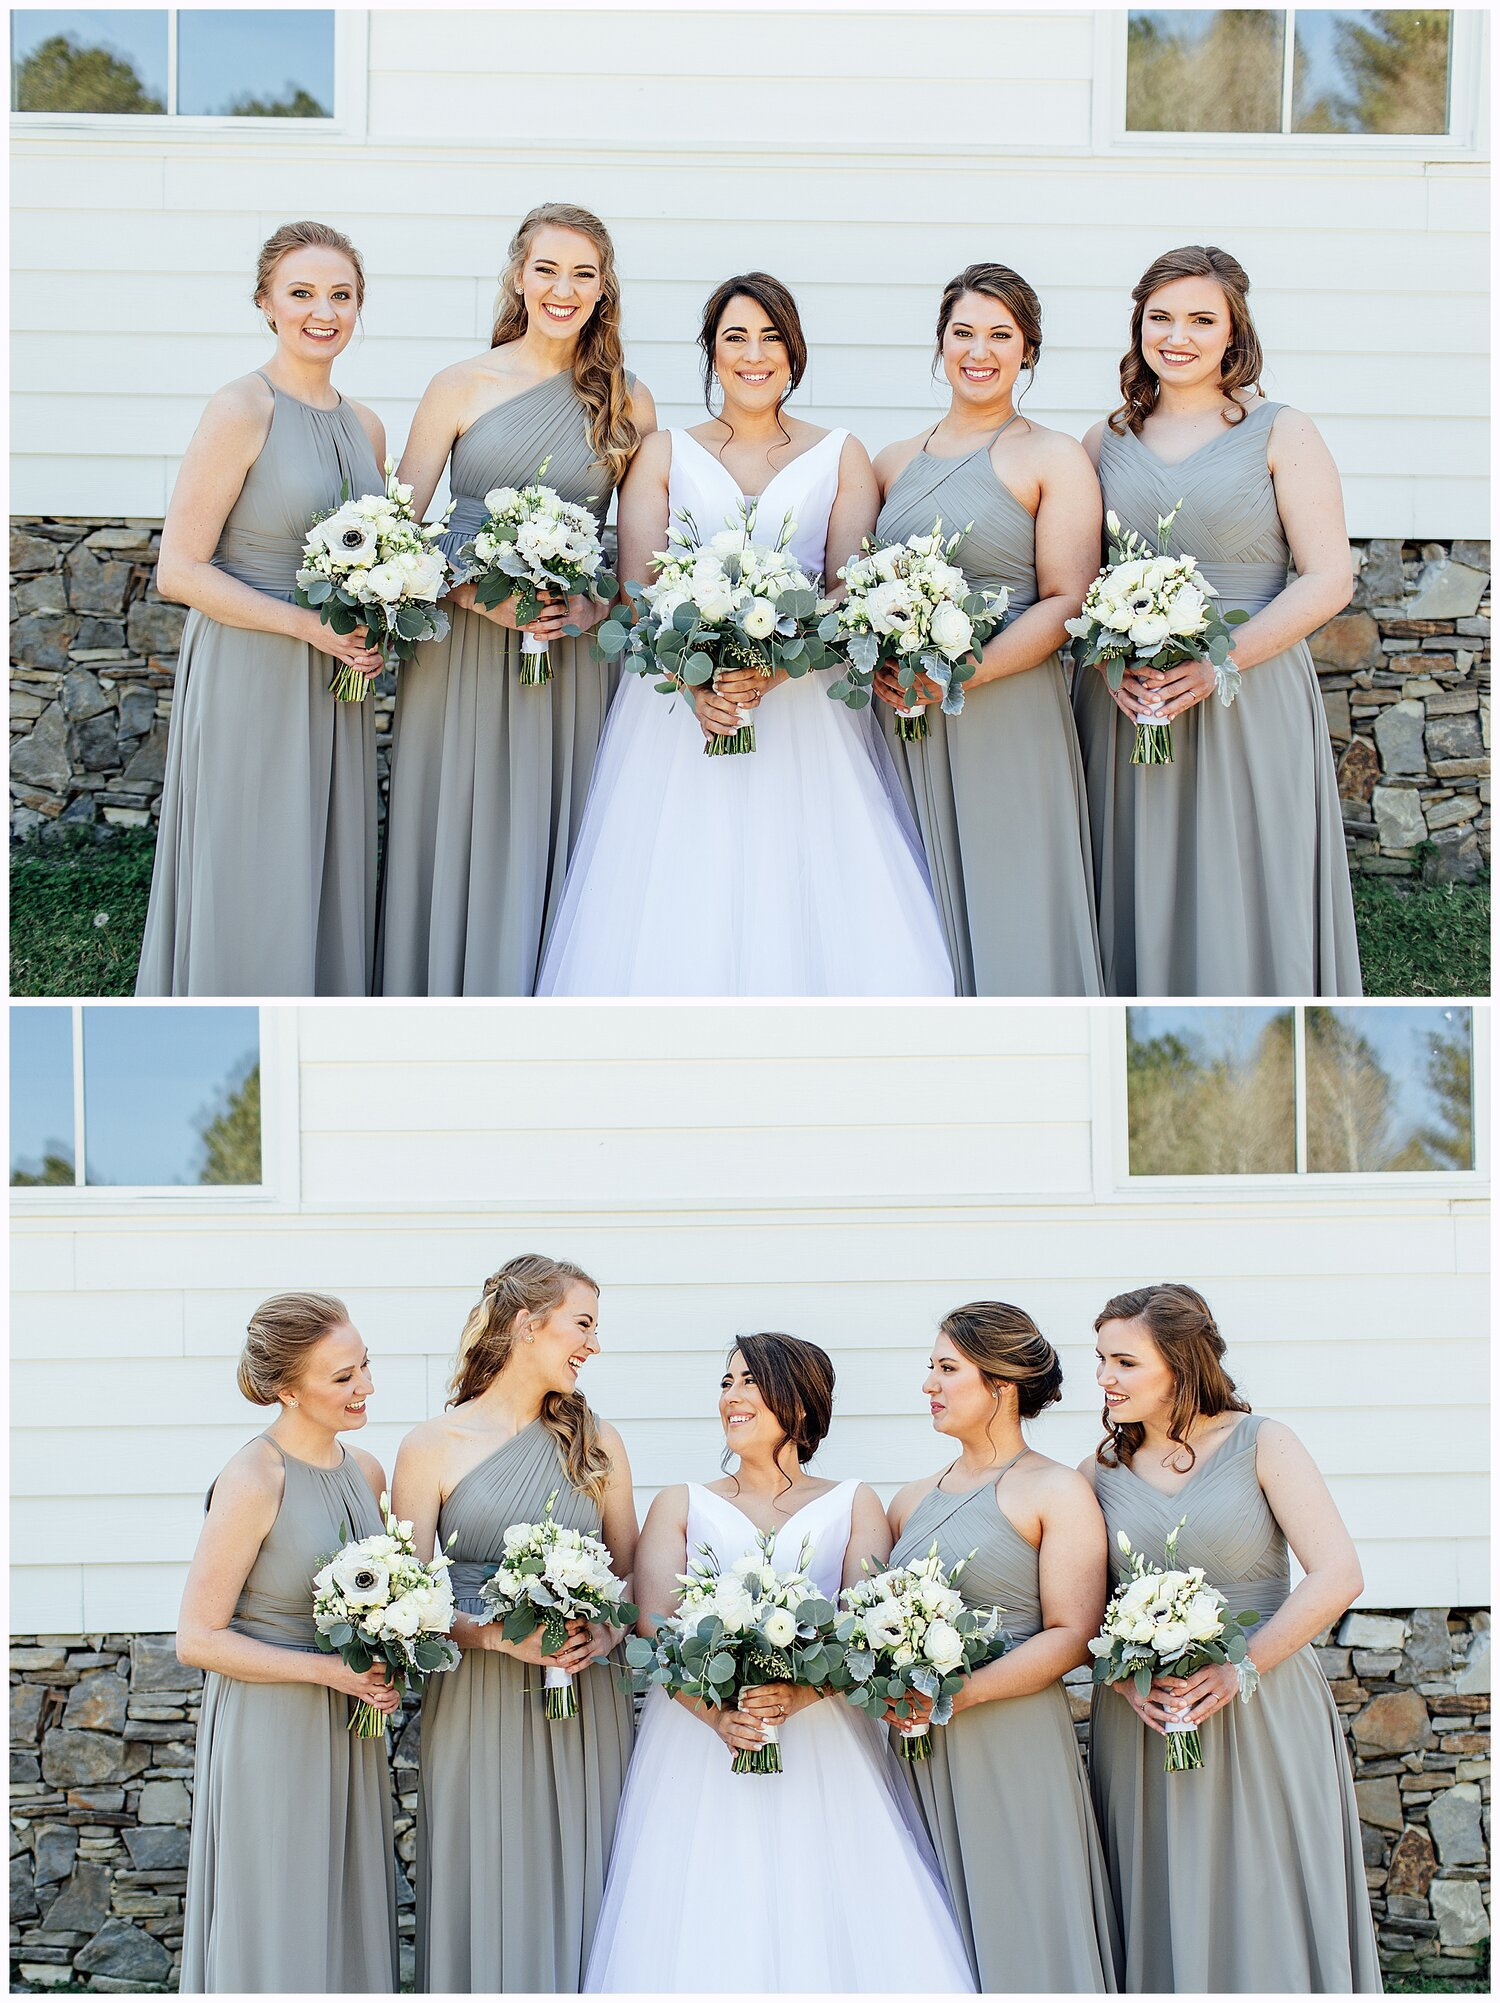 lindsey ann photography, birmingham wedding photographer, alabama wedding photographer, church at branch cove wedding, christ church at branch cove